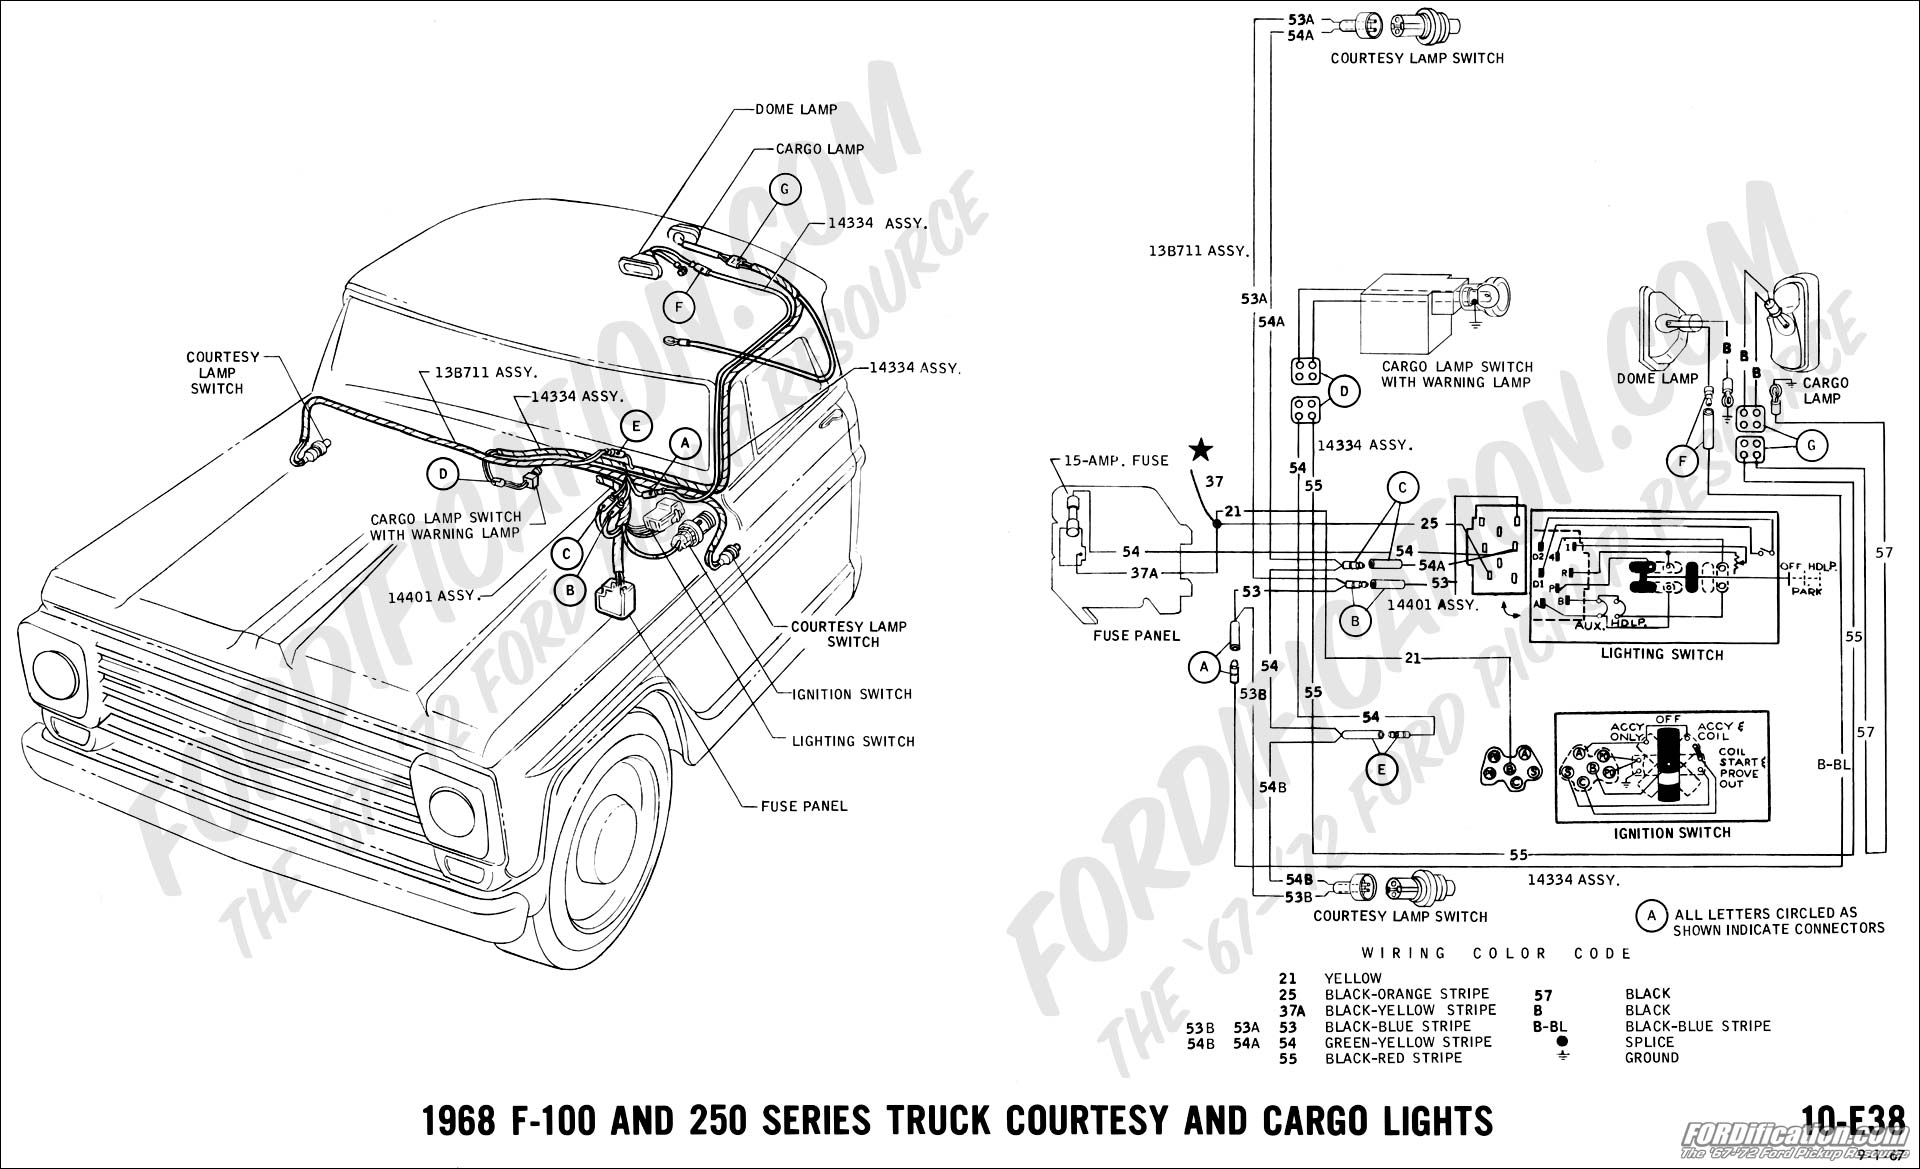 70s Ford Radio Wiring Diagram Library Schematiccar Page 151 1968 F 100 And 250 Courtesy Cargo Lights